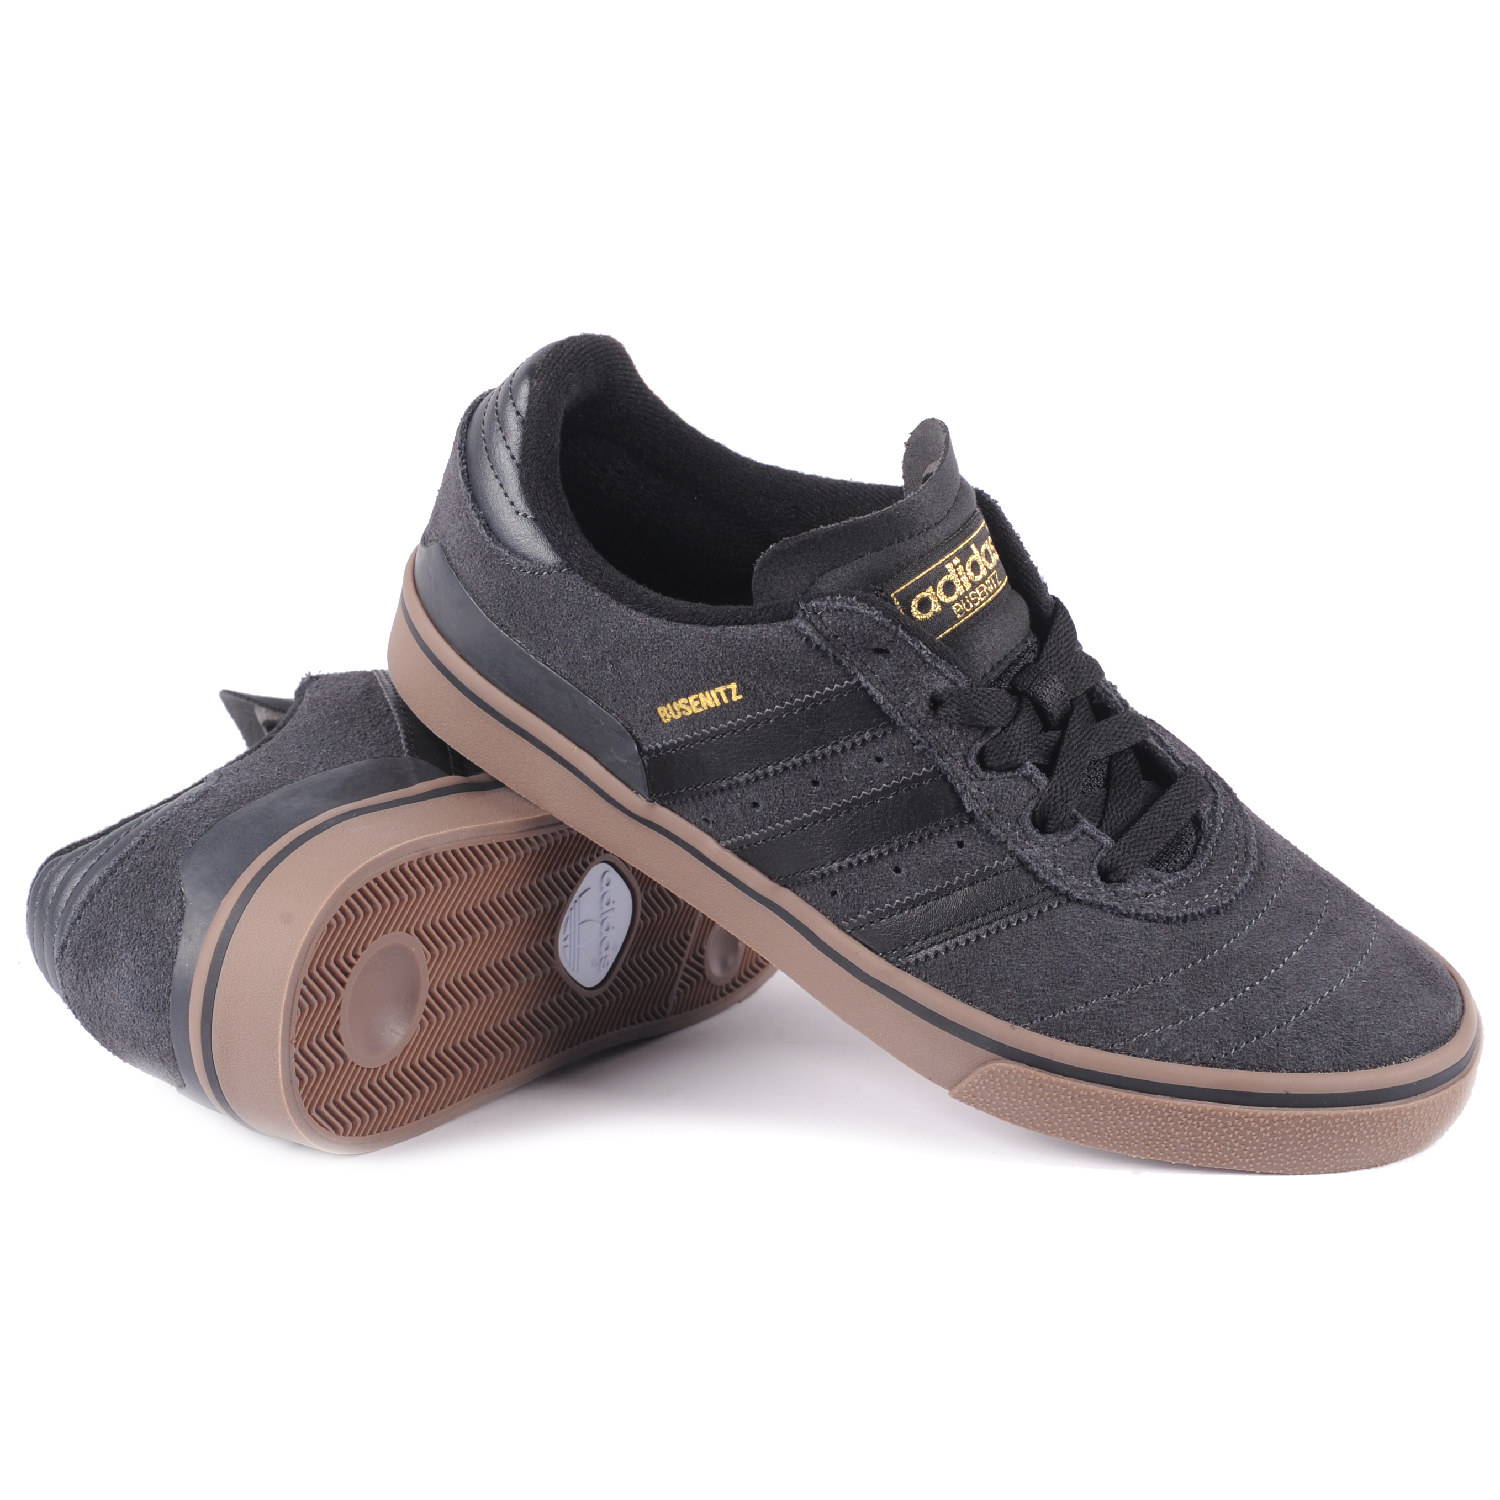 Adidas Busenitz Vulc Solid Grey Core Black Gold Metallic